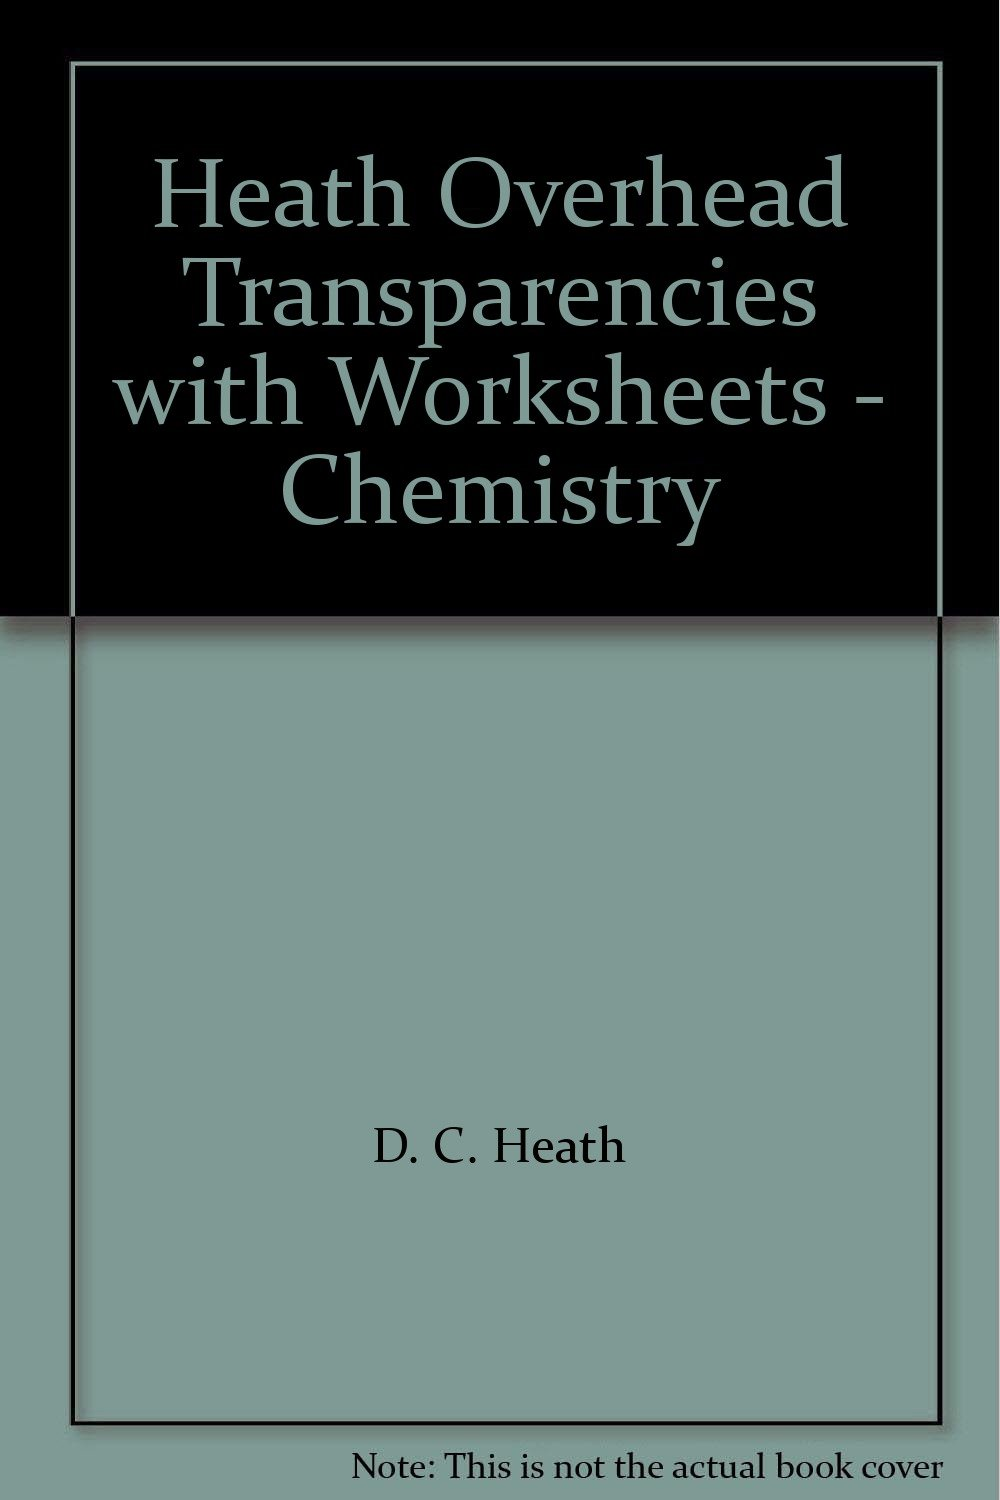 Worksheets D.c Heath And Company Worksheets heath overhead transparencies with worksheets chemistry d c amazon com books